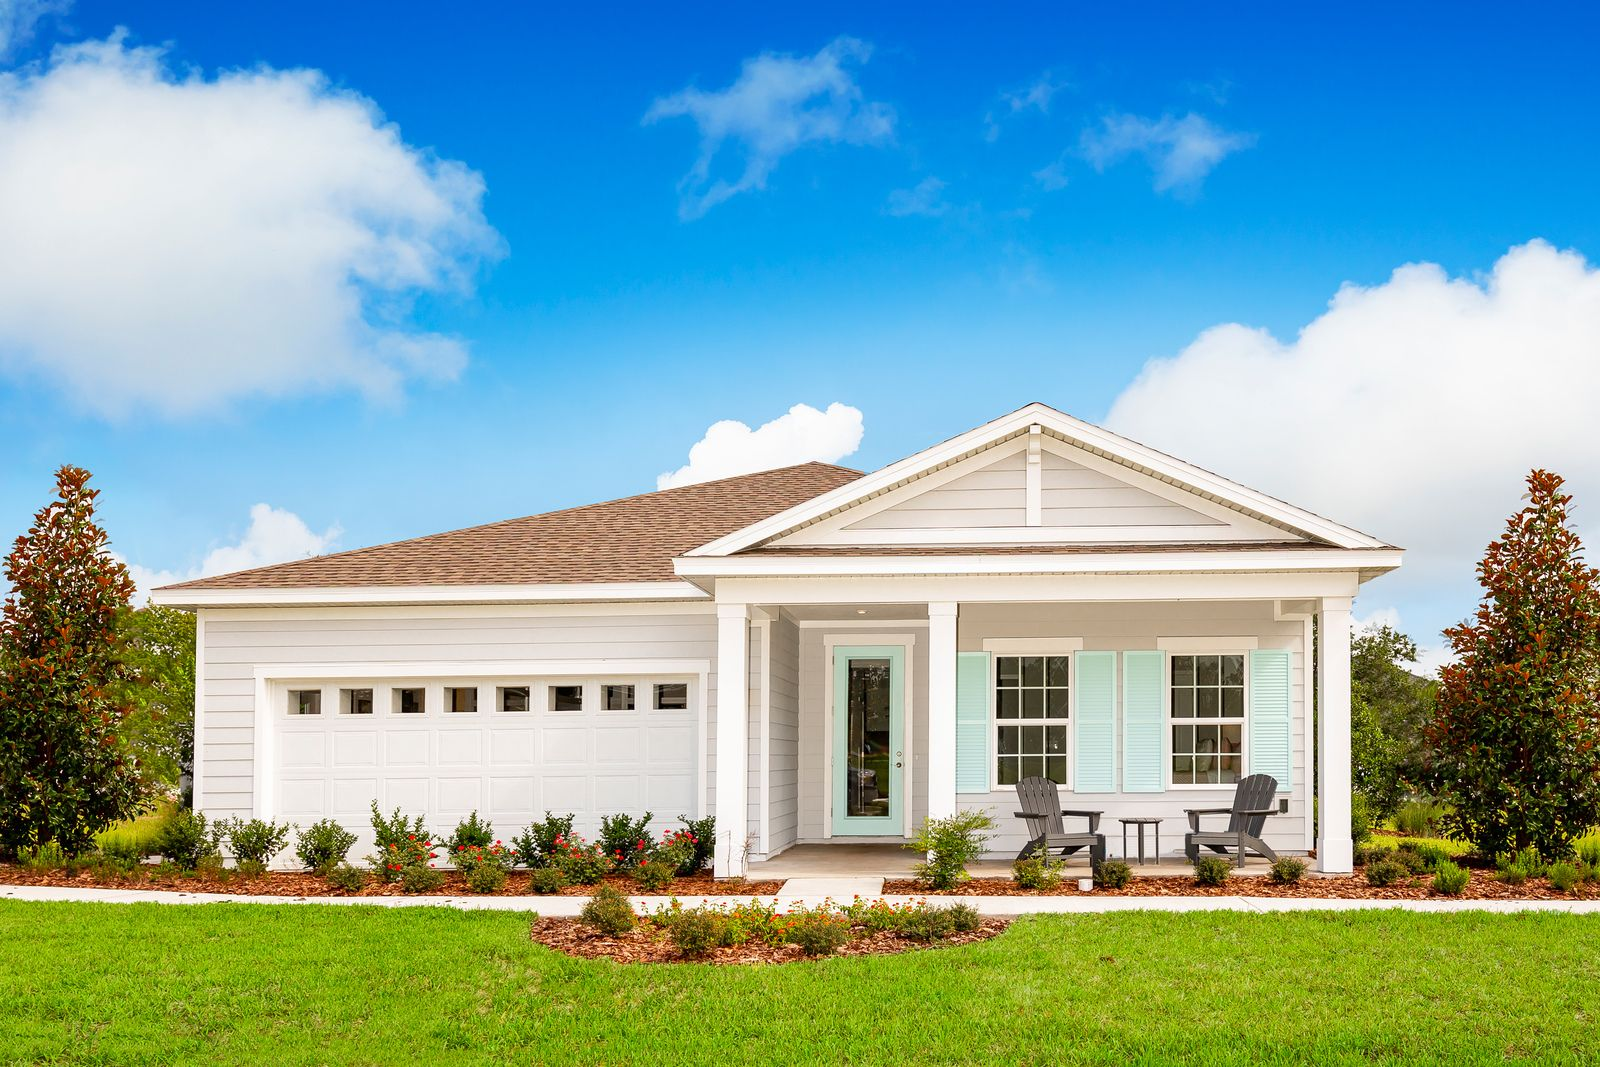 """New Phase of Homesites Available - Welcome Home to Panther Creek:Own more for less, with included features like 9' ceilings, granite kitchen counter tops and 42"""" cabinets - an incredible value!Schedule an appointment today to learn more."""